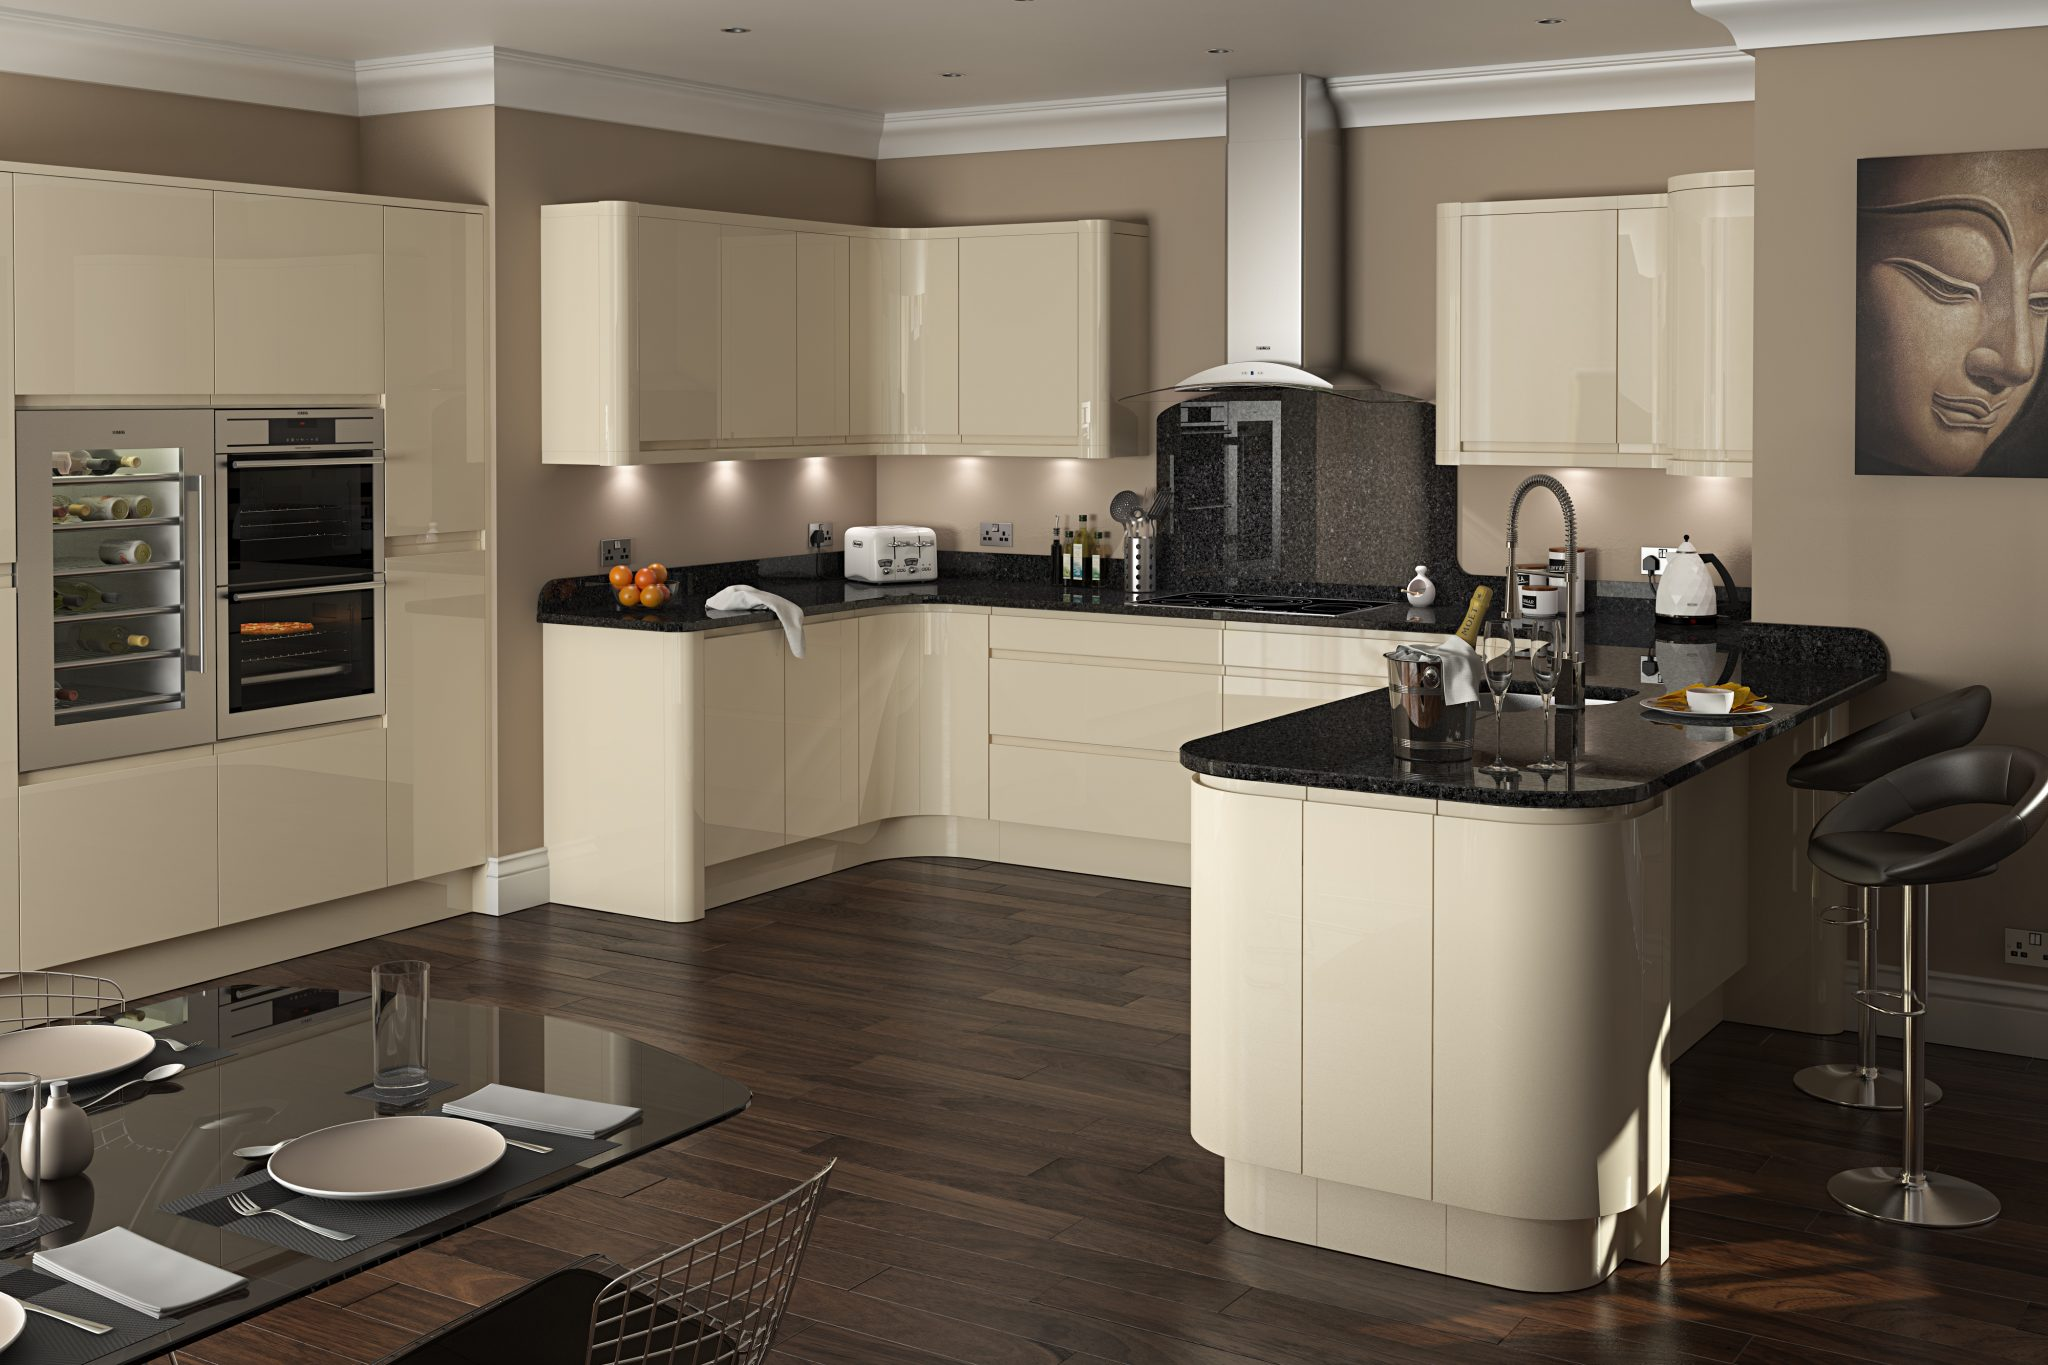 Kitchen design kitchens wirral bespoke luxury designs and ideas wirrals designer specialist - Kitchen design expo ...